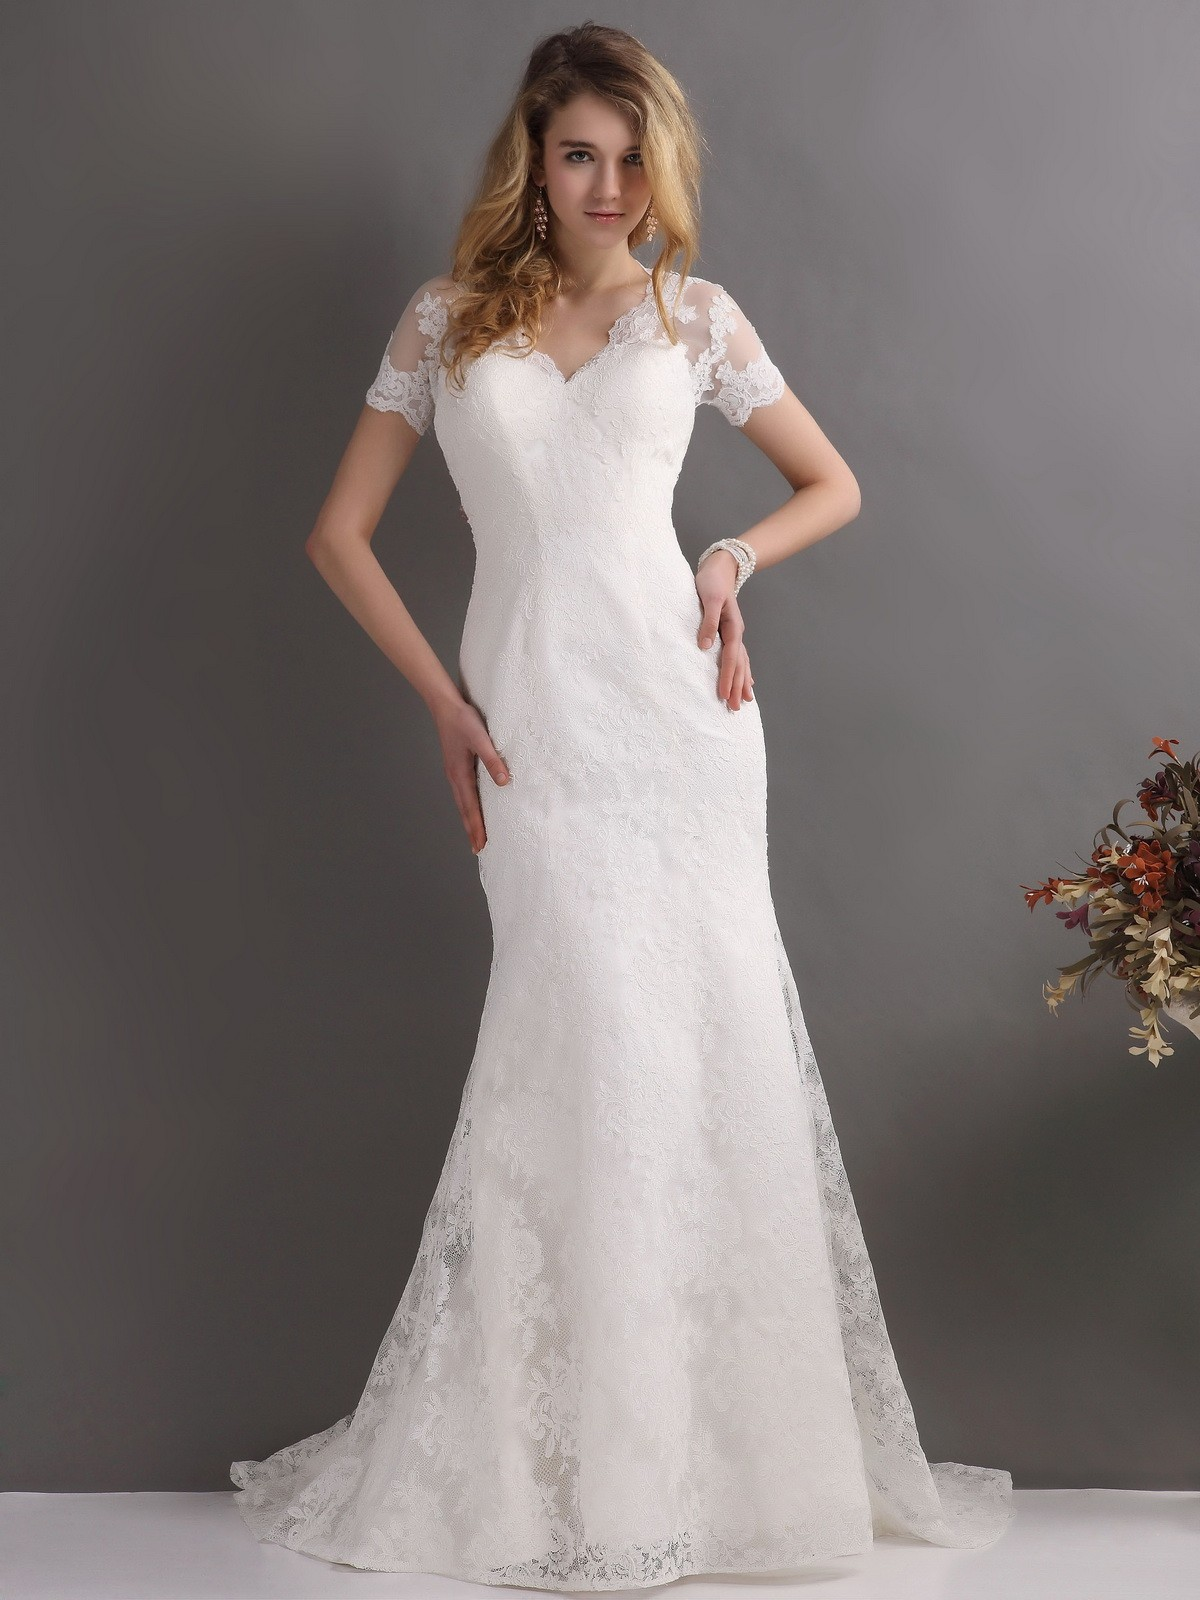 Short Sleeved V Neck Fit Flared Lace Wedding Dress with Buttons Back